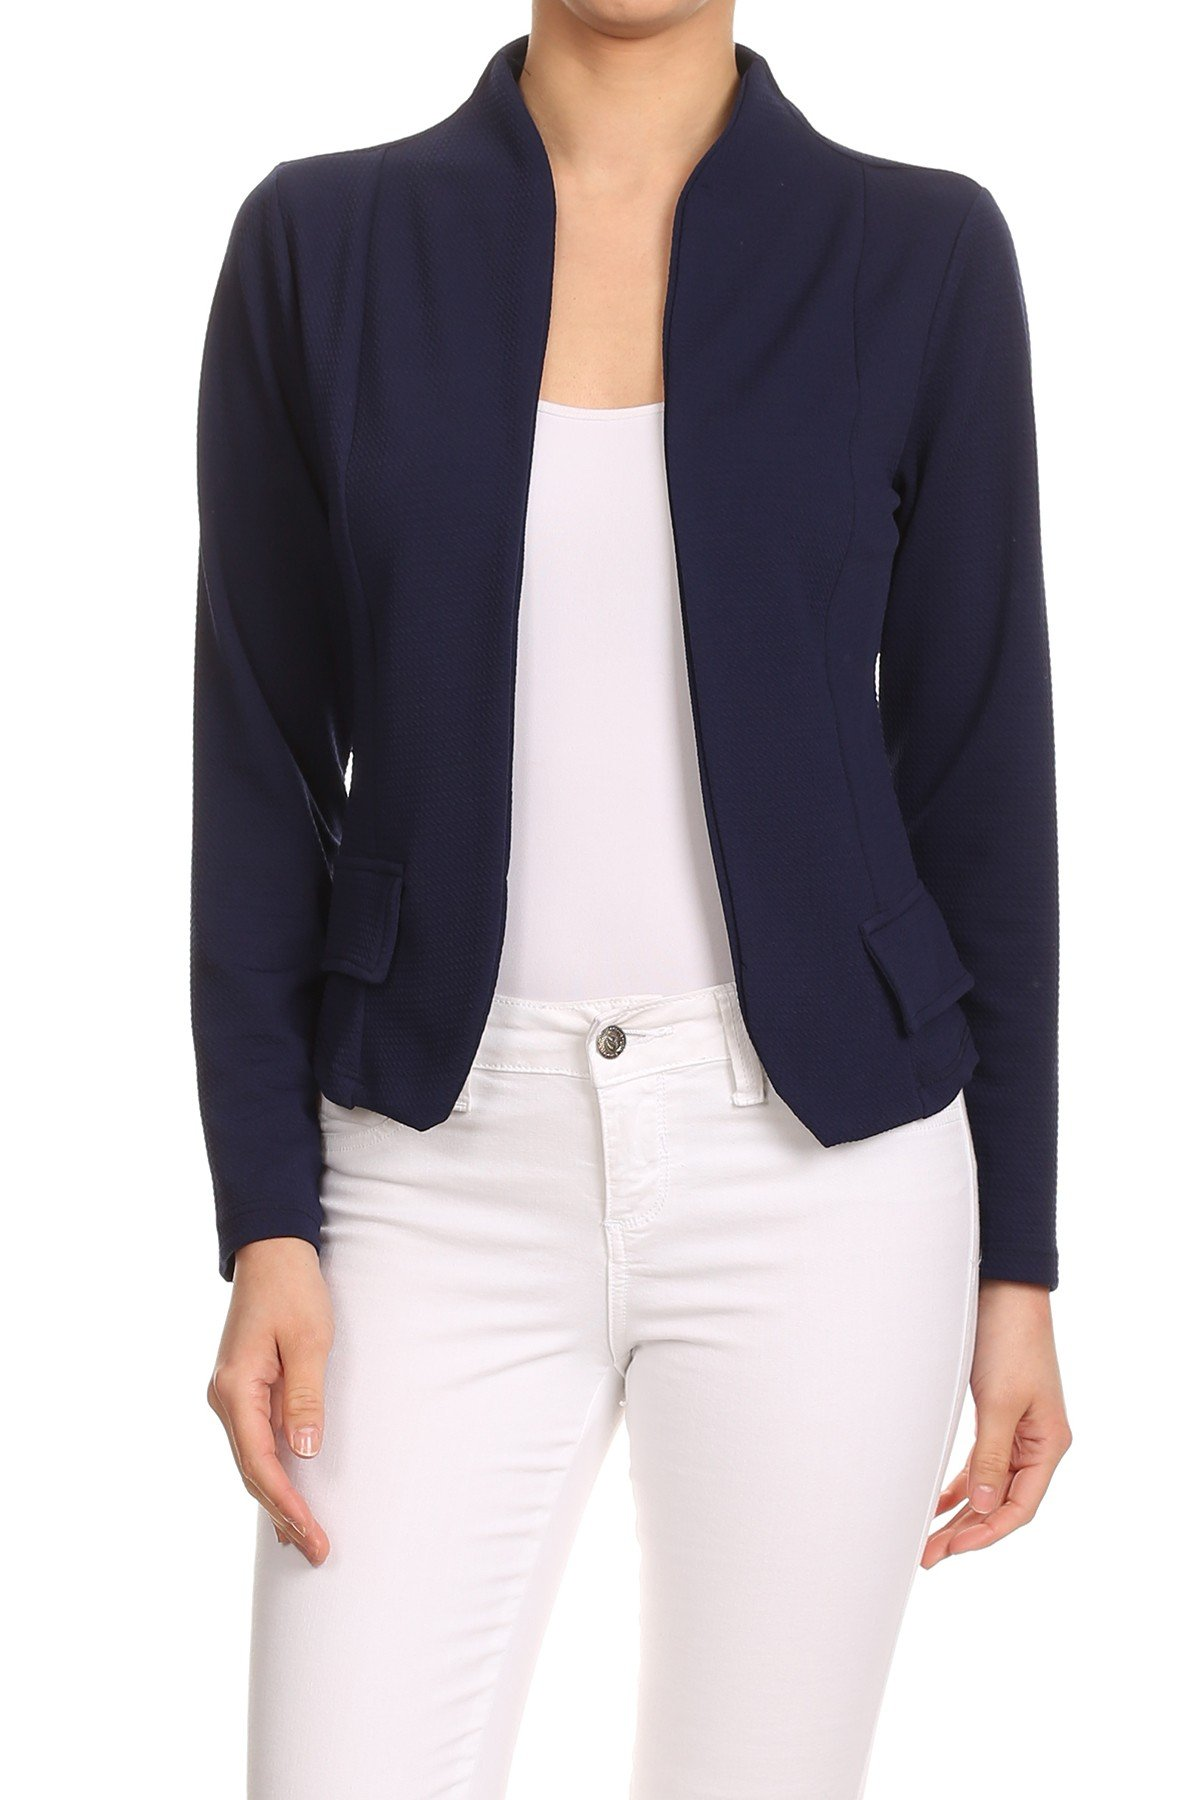 MissyMissy Womens Casual Business Loose Fit Solid Blazer Jackets J907 (2X-Large, Navy)